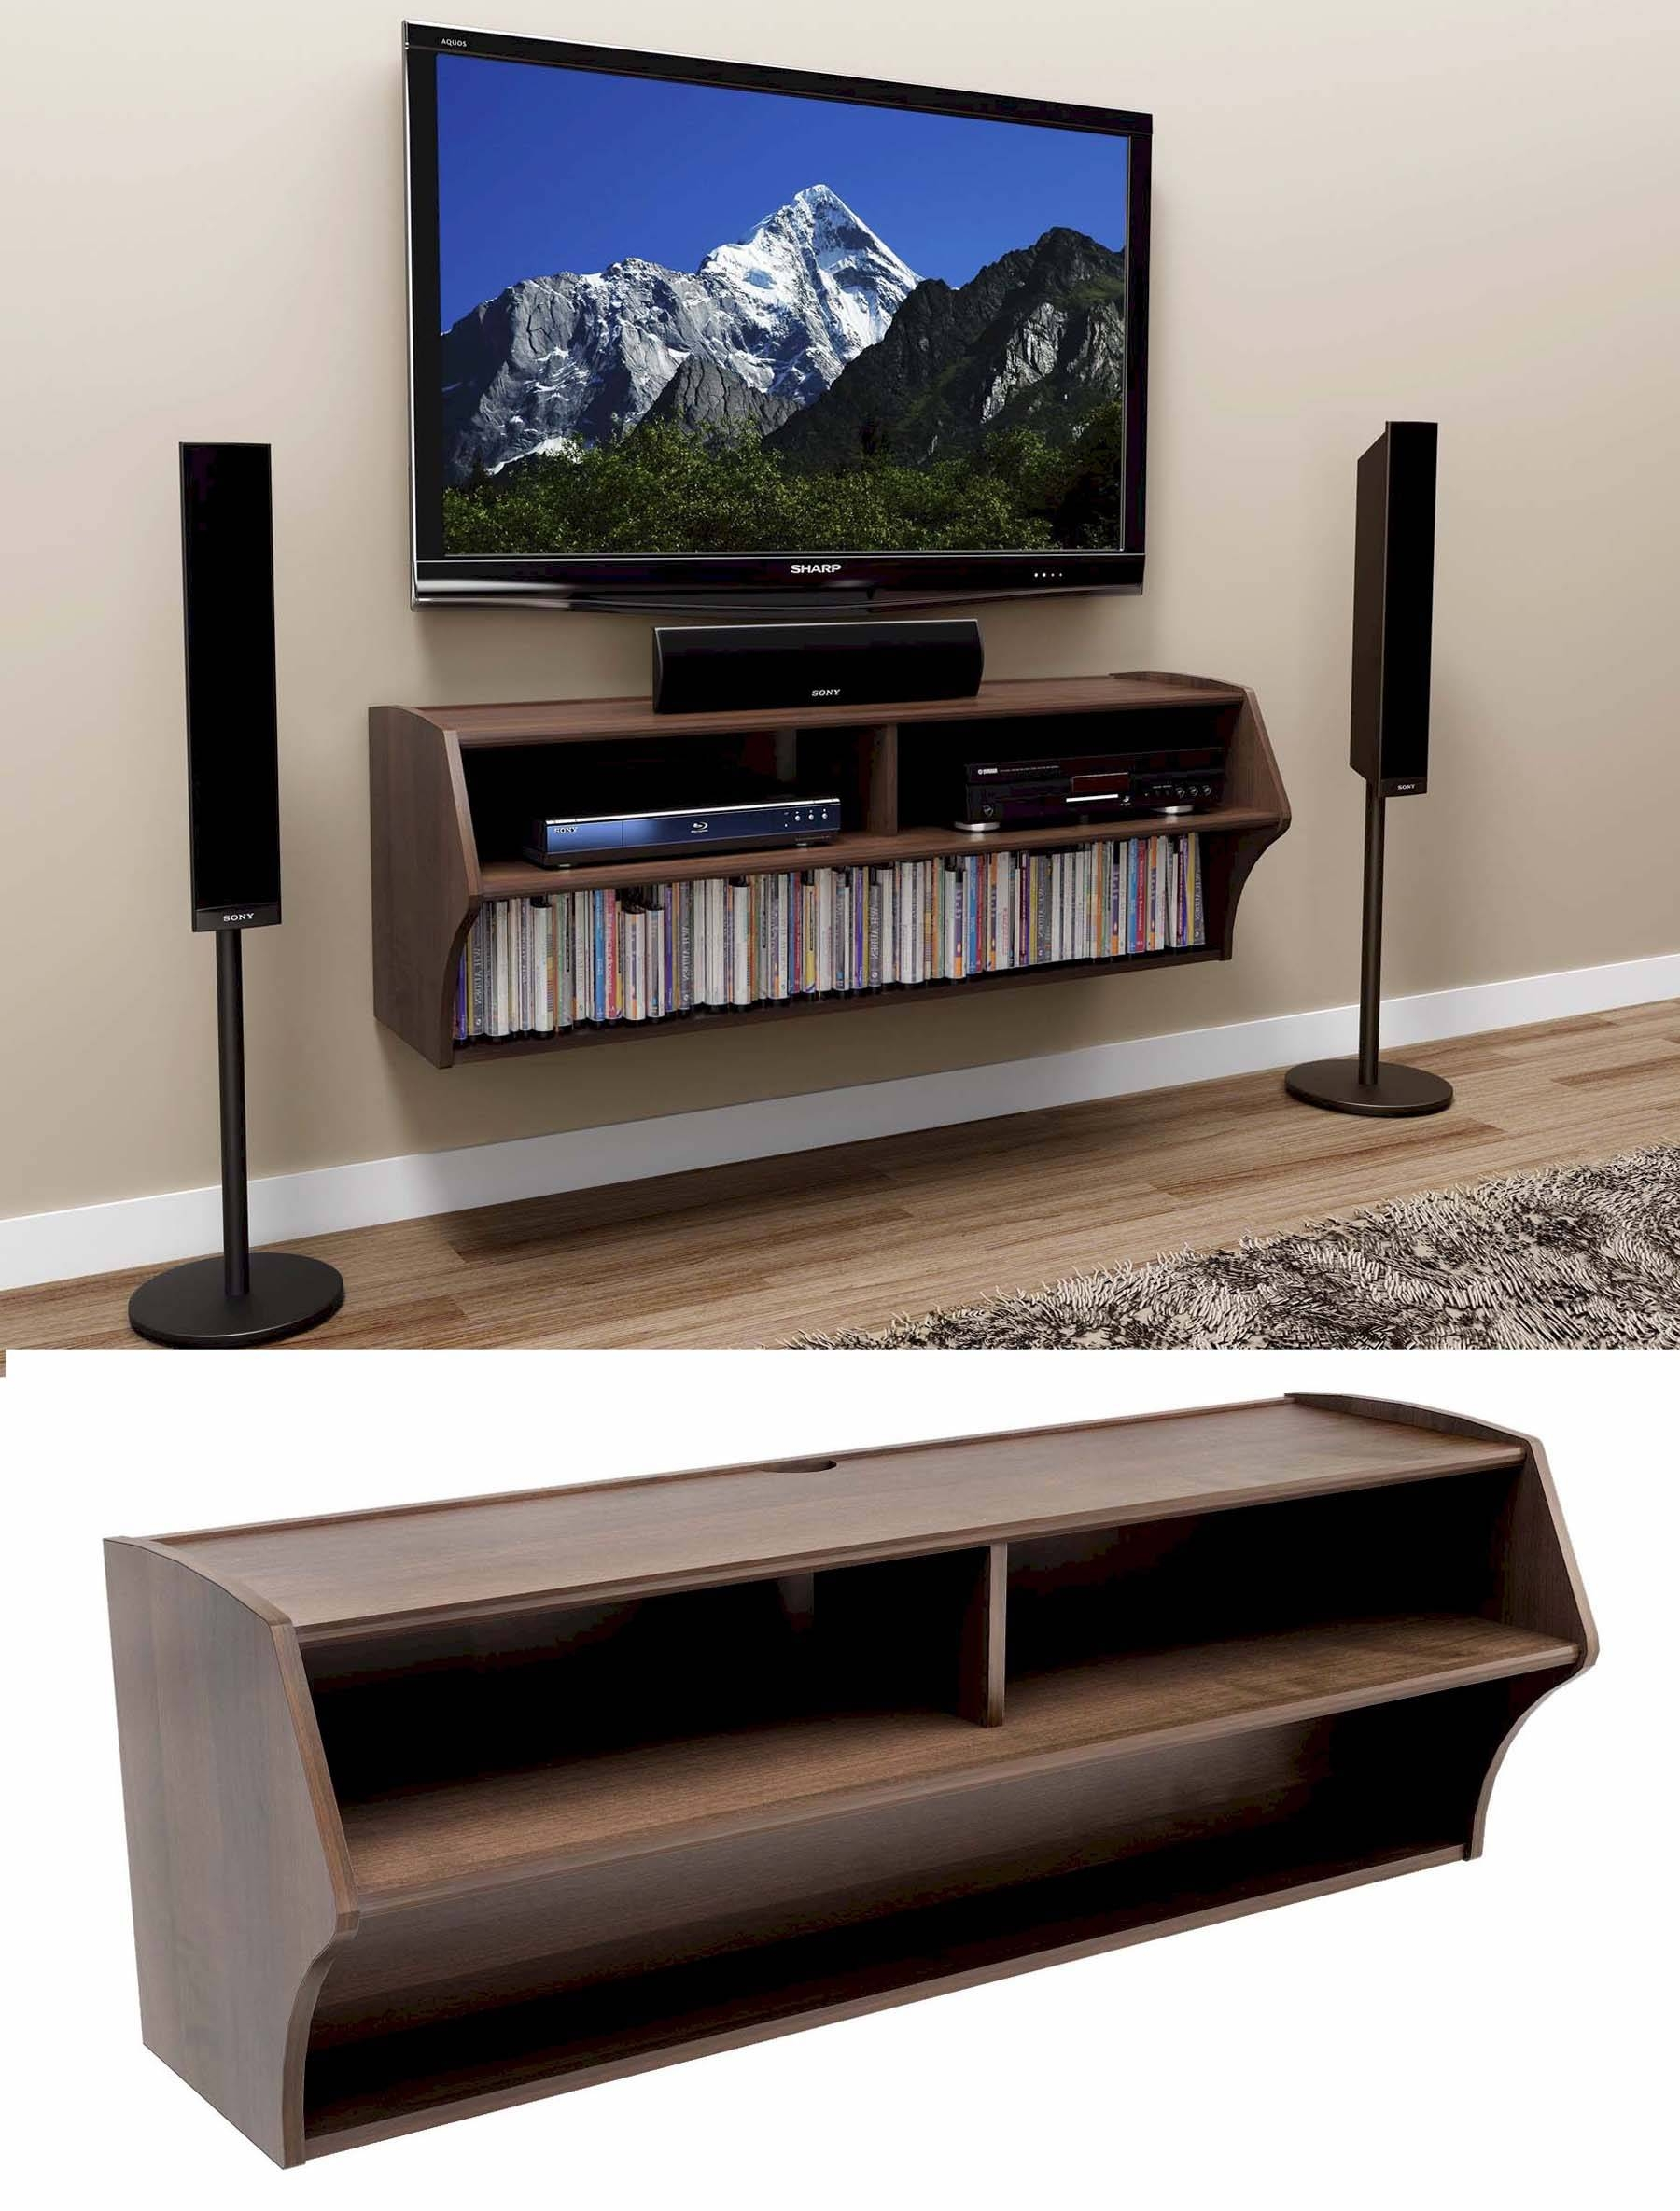 Dark Brown Wood Venner Wall Mounted Tv Stand With Open Shelves And Inside Open Shelf Tv Stands (View 8 of 15)